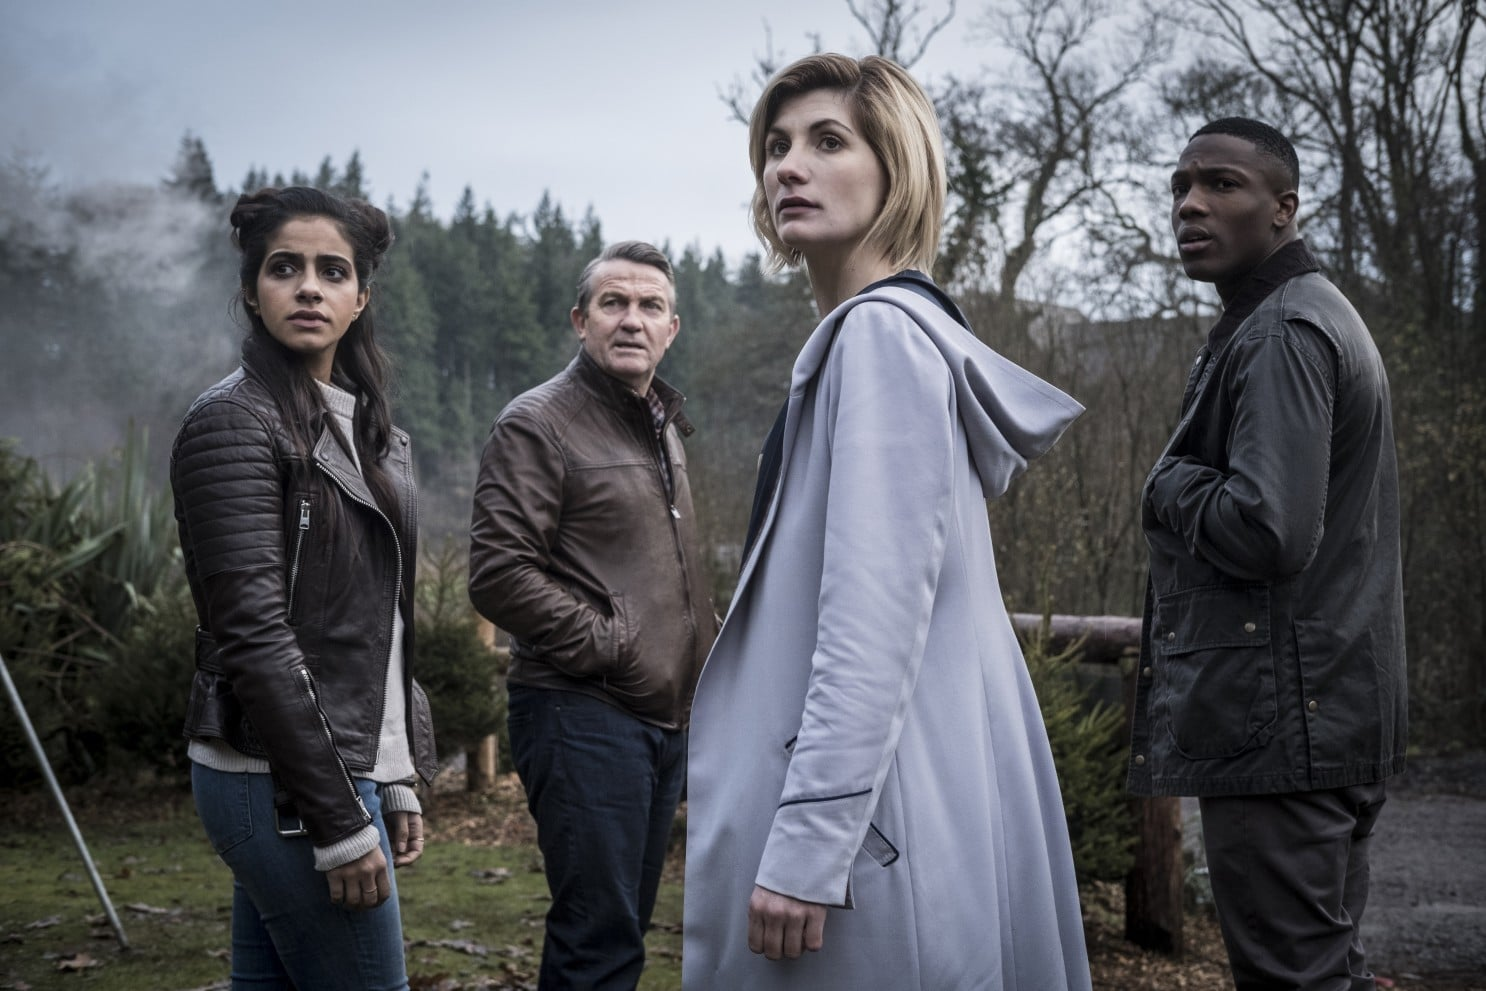 Chris Chibnall and Jodie Whittaker Doctor Who Era In Need of Redemption